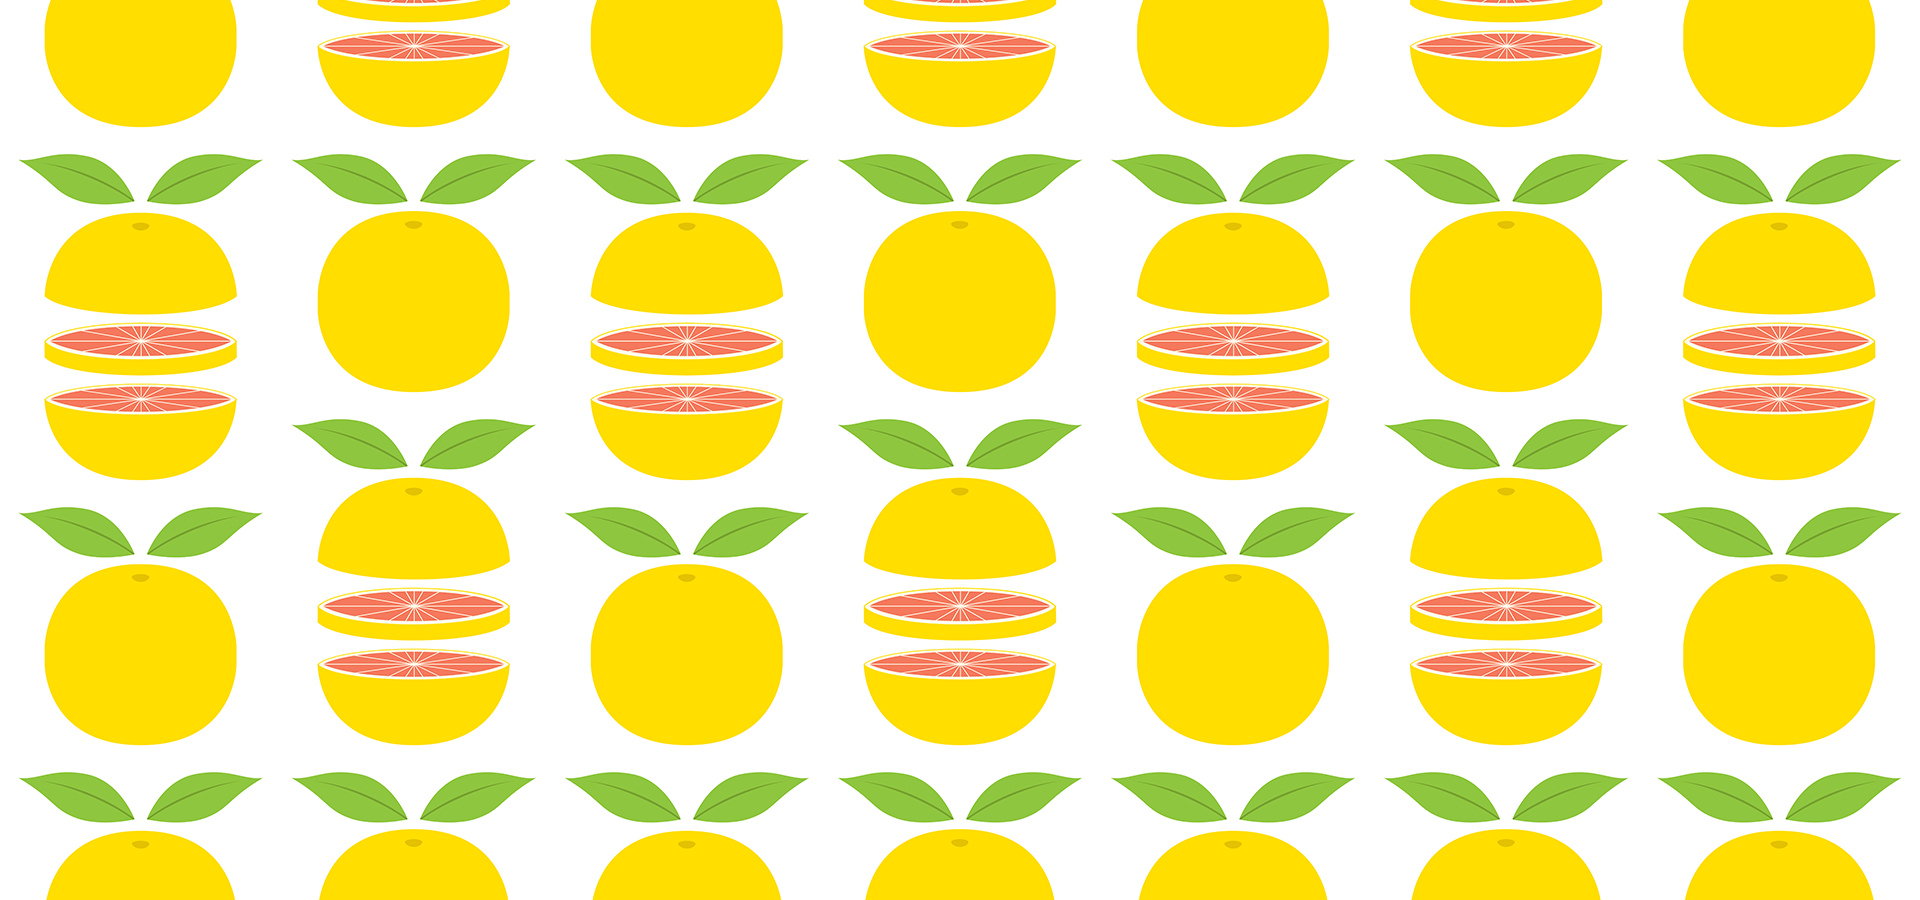 grapefruit pattern by petits pixels